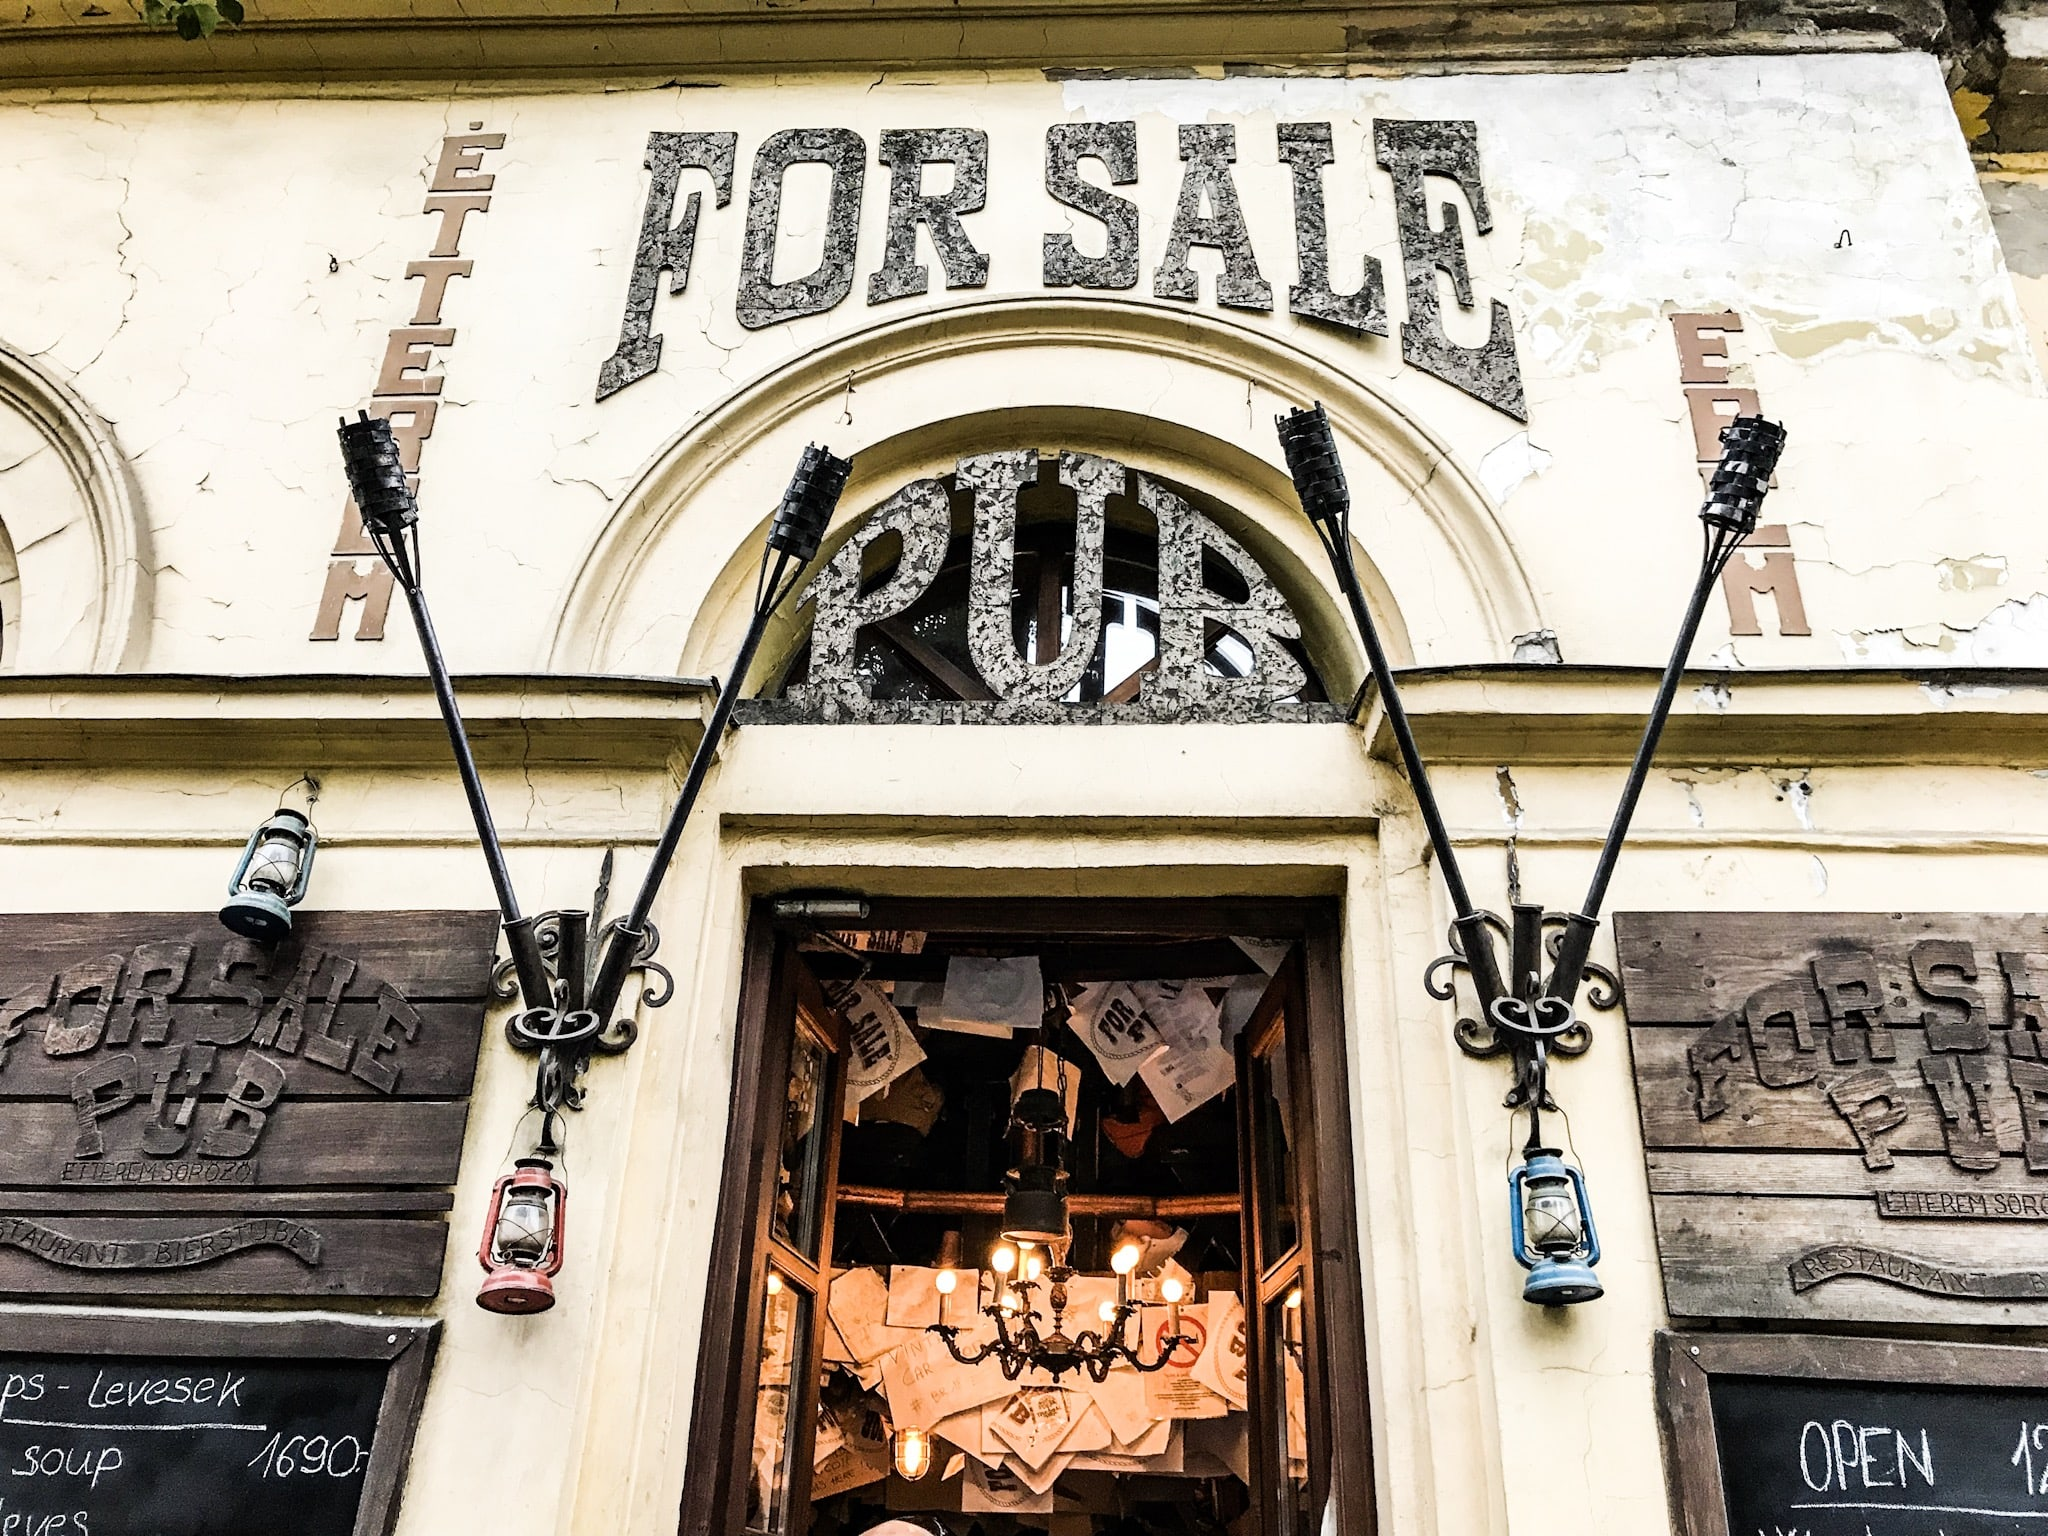 Budapest - For Sale Pub